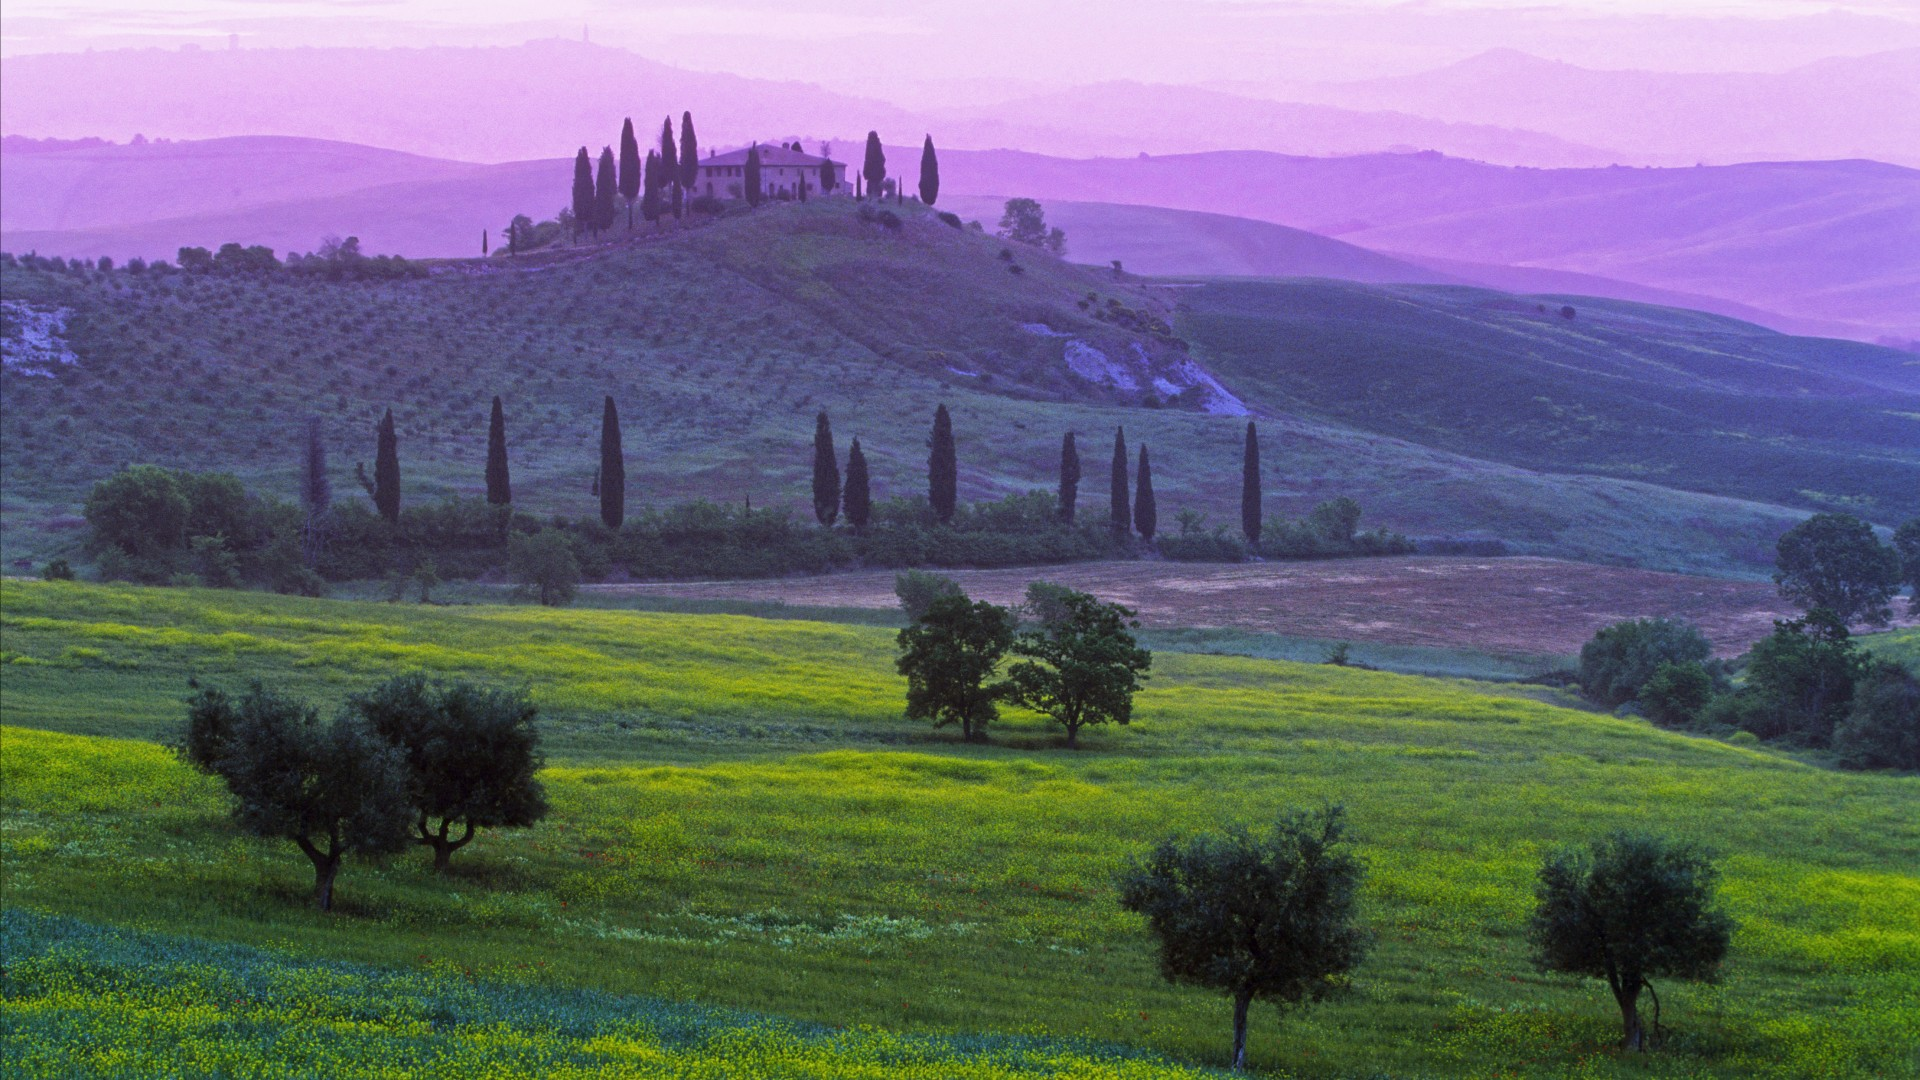 Tuscany, 5k, 4k wallpaper, 8k, Italy, Podere Belvedere Hotel, fields, meadows, villages, green, nature, booking, rest, travel (horizontal)